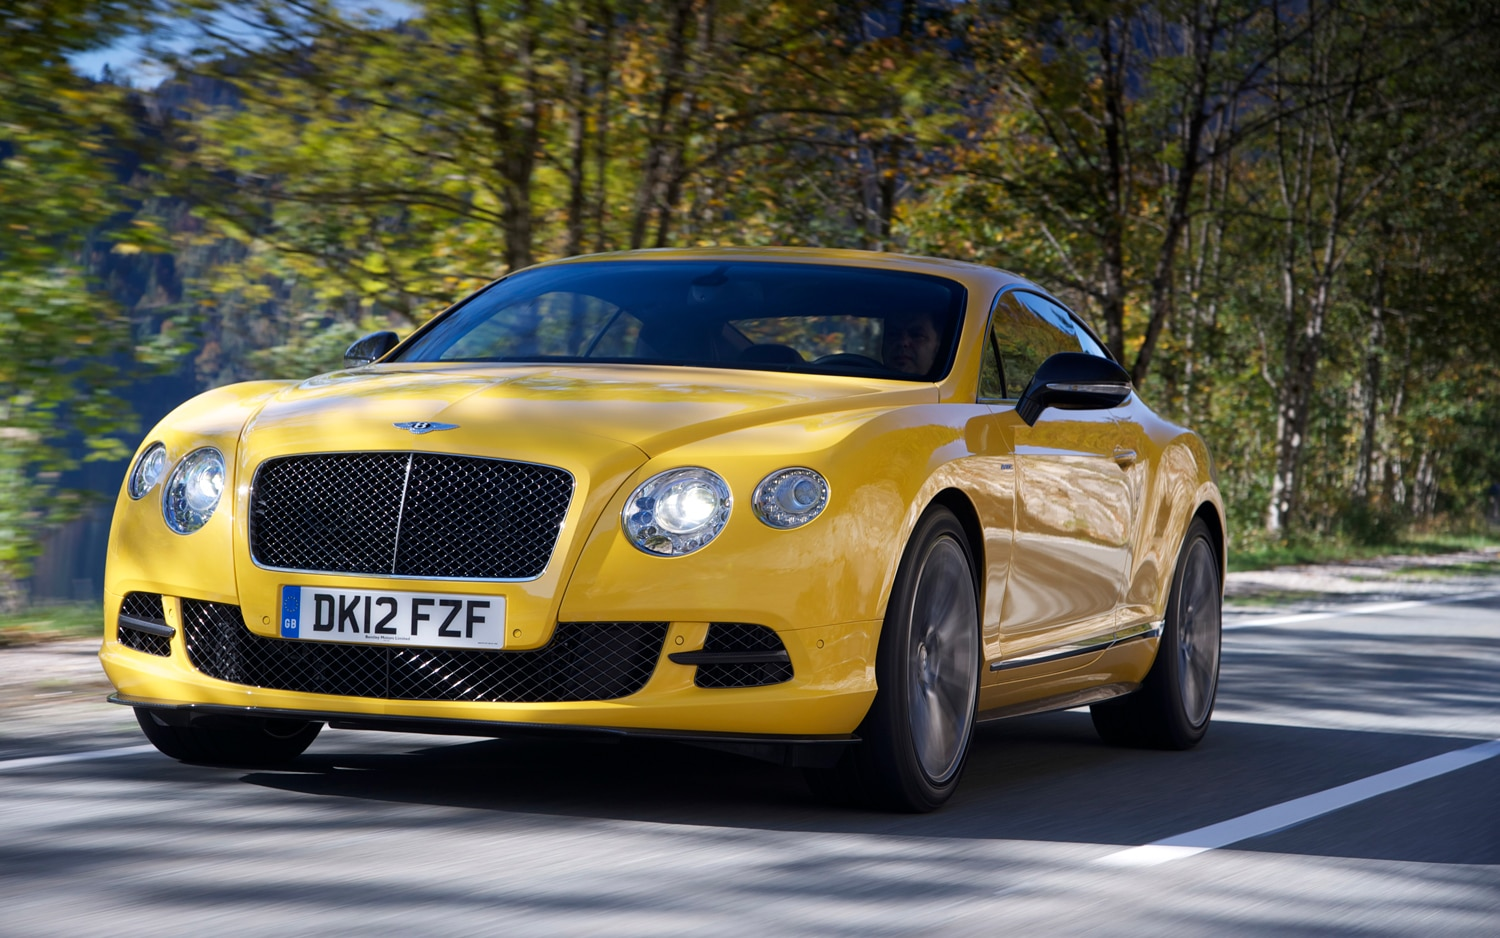 First Drive: 2013 Bentley Continental GT Speed - Automobile Magazine